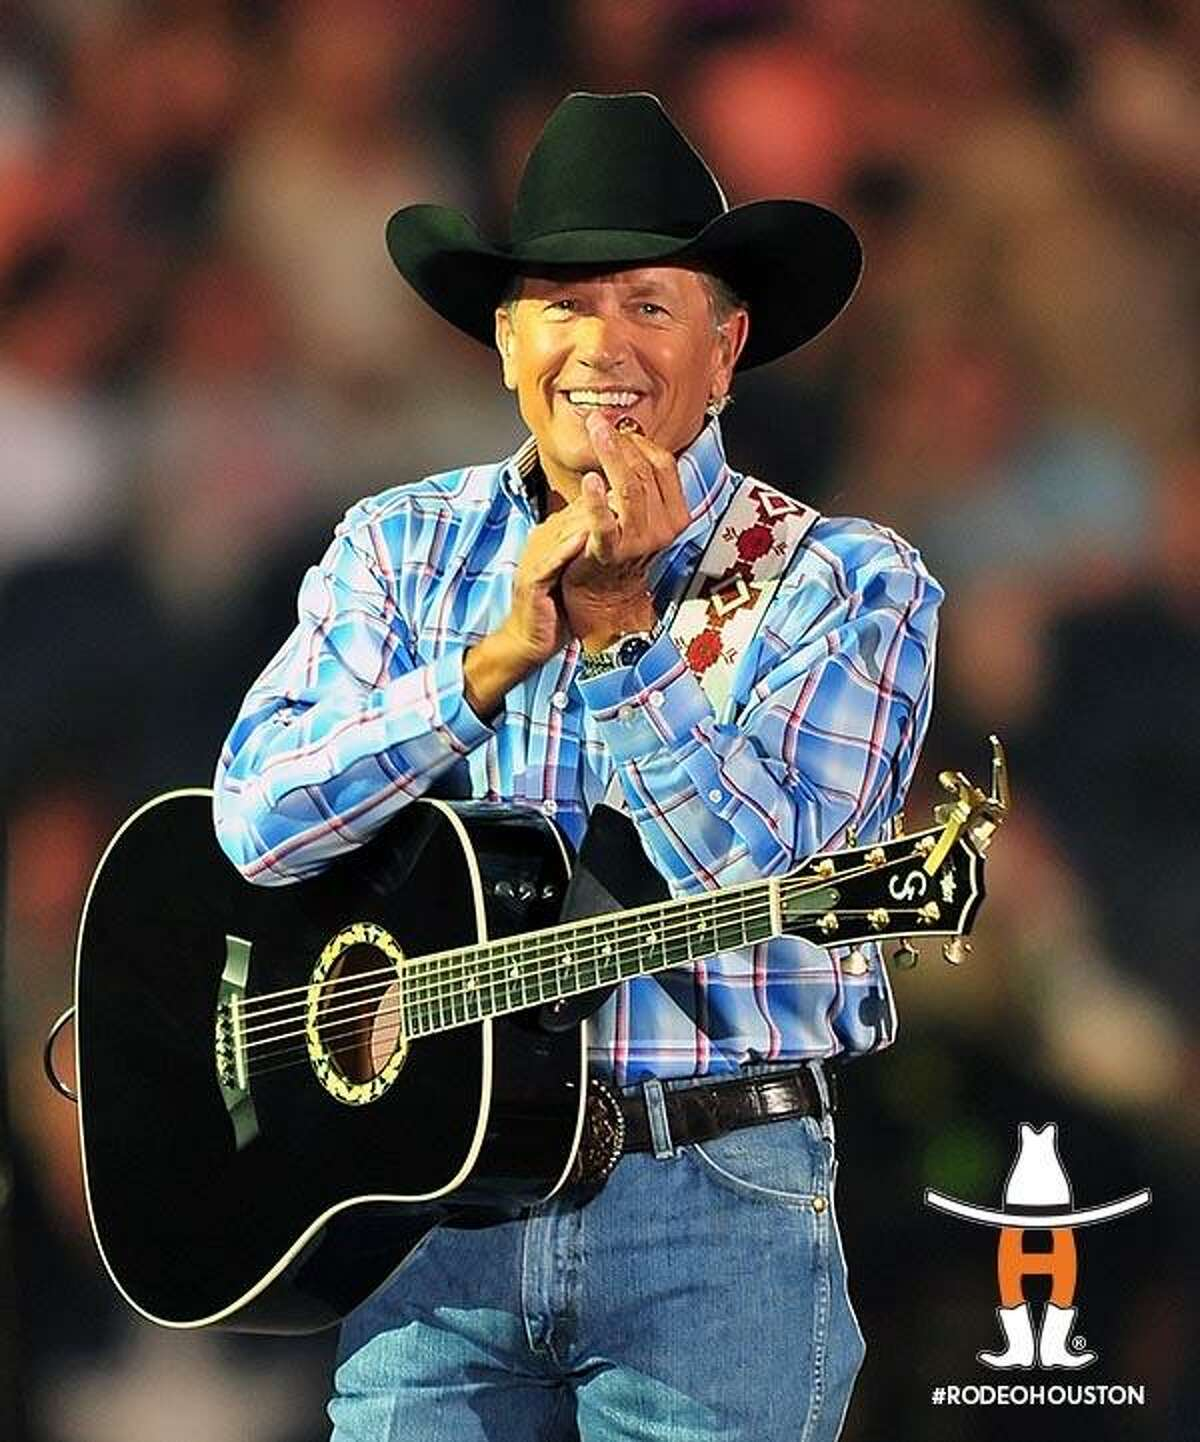 Houston Livestock Show and Rodeo officials announced this week changes to the 2019 schedule with the addition of an extra day and a concert-only performance by country music entertainer and icon George Strait. The 2019 Rodeo will now run for 21 days Monday, Feb. 25 through Sunday, March 17. George Strait will perform on the final night, marking his 30th RODEOHOUSTONperformance.